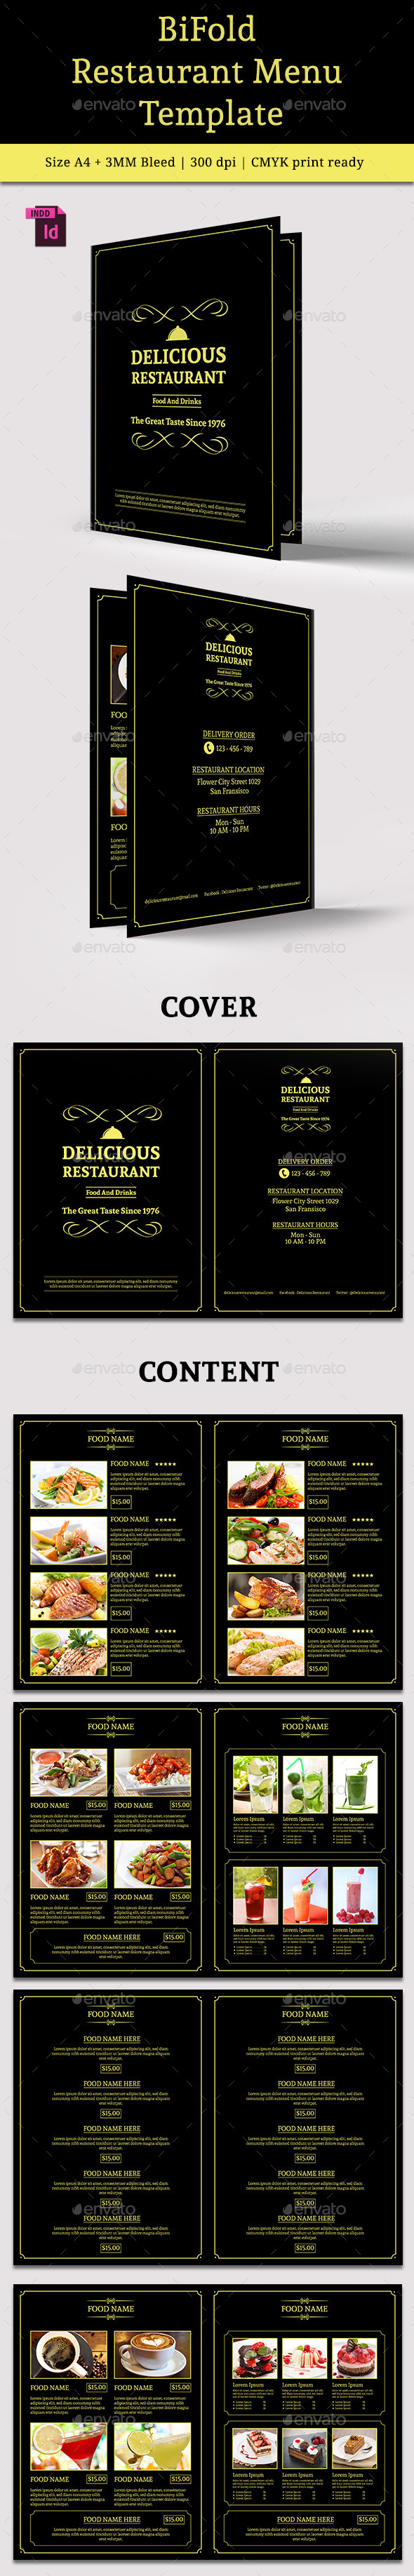 GraphicRiver BiFold Restaurant Menu Vol 5 10538410